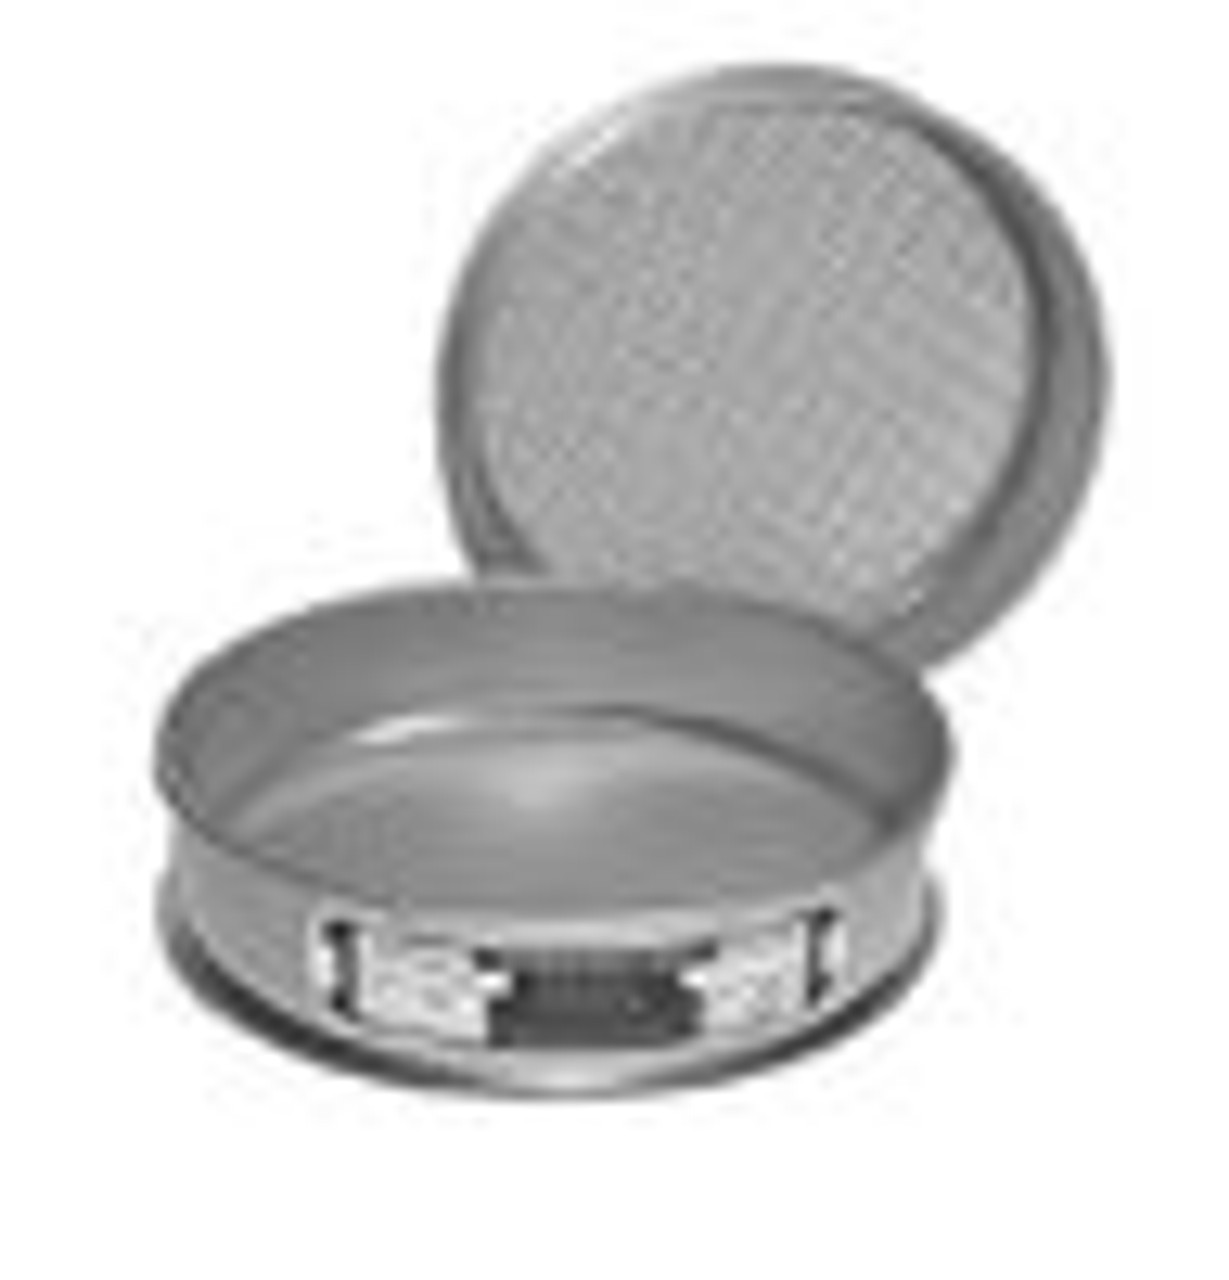 ENDECOTTS WORKING SIEVES GREAT FOR SAND AND GRAVEL DURABLE STAINLESS STEEL RIMS